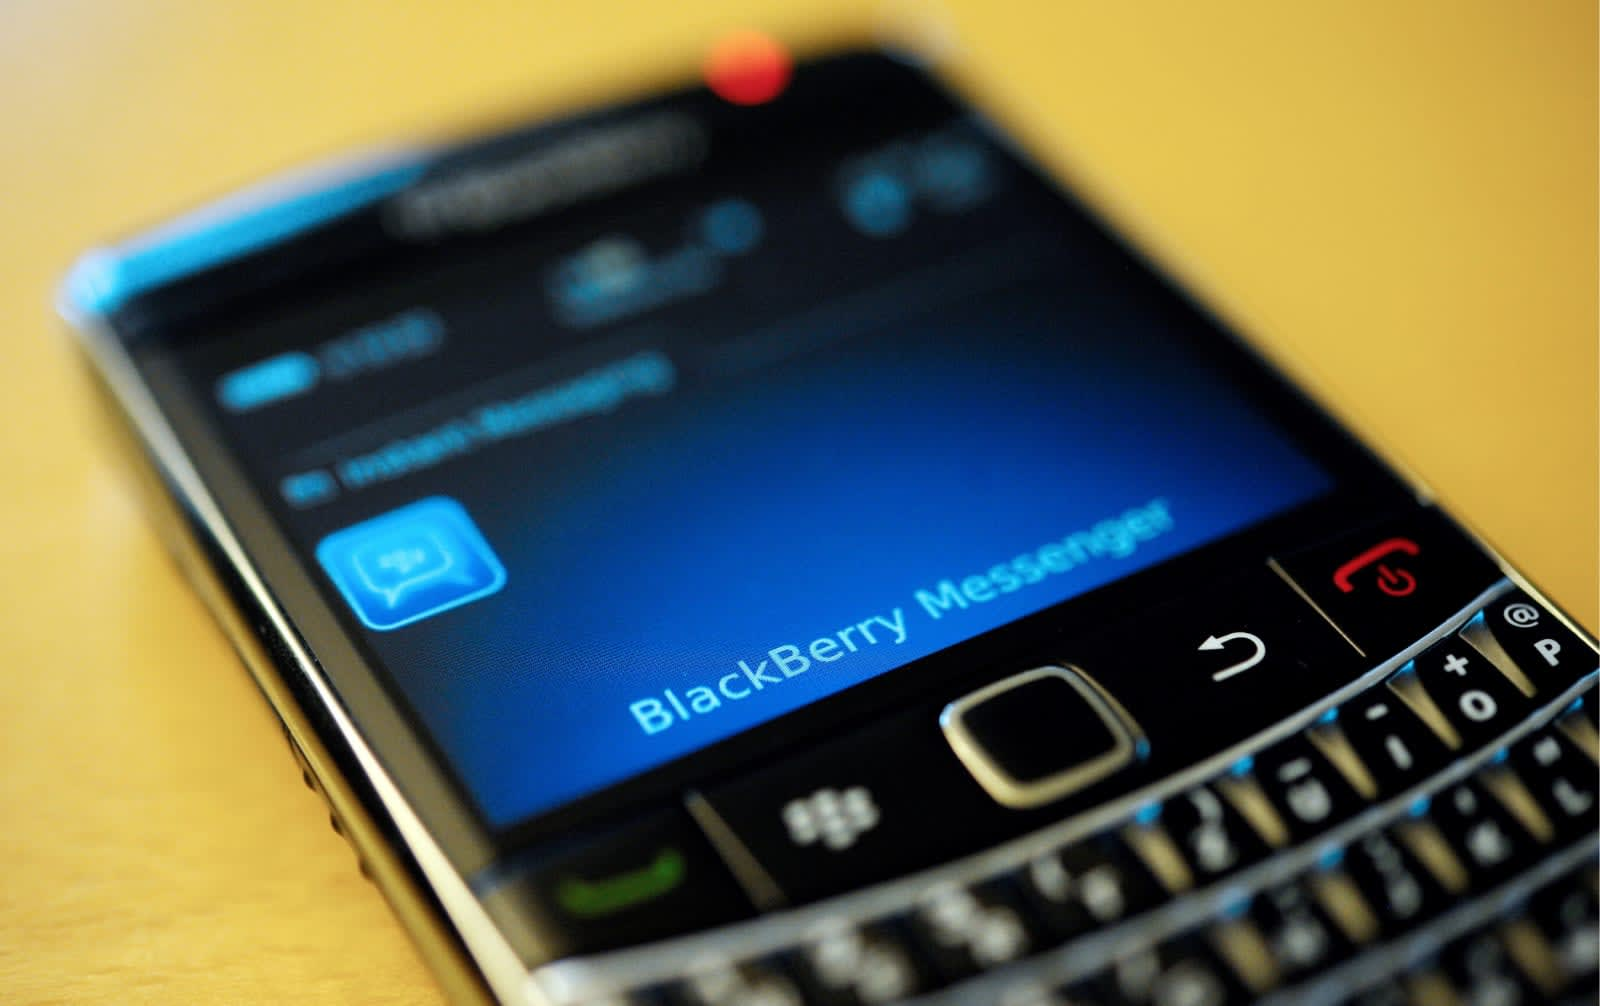 BlackBerry Messenger shuts down for good today